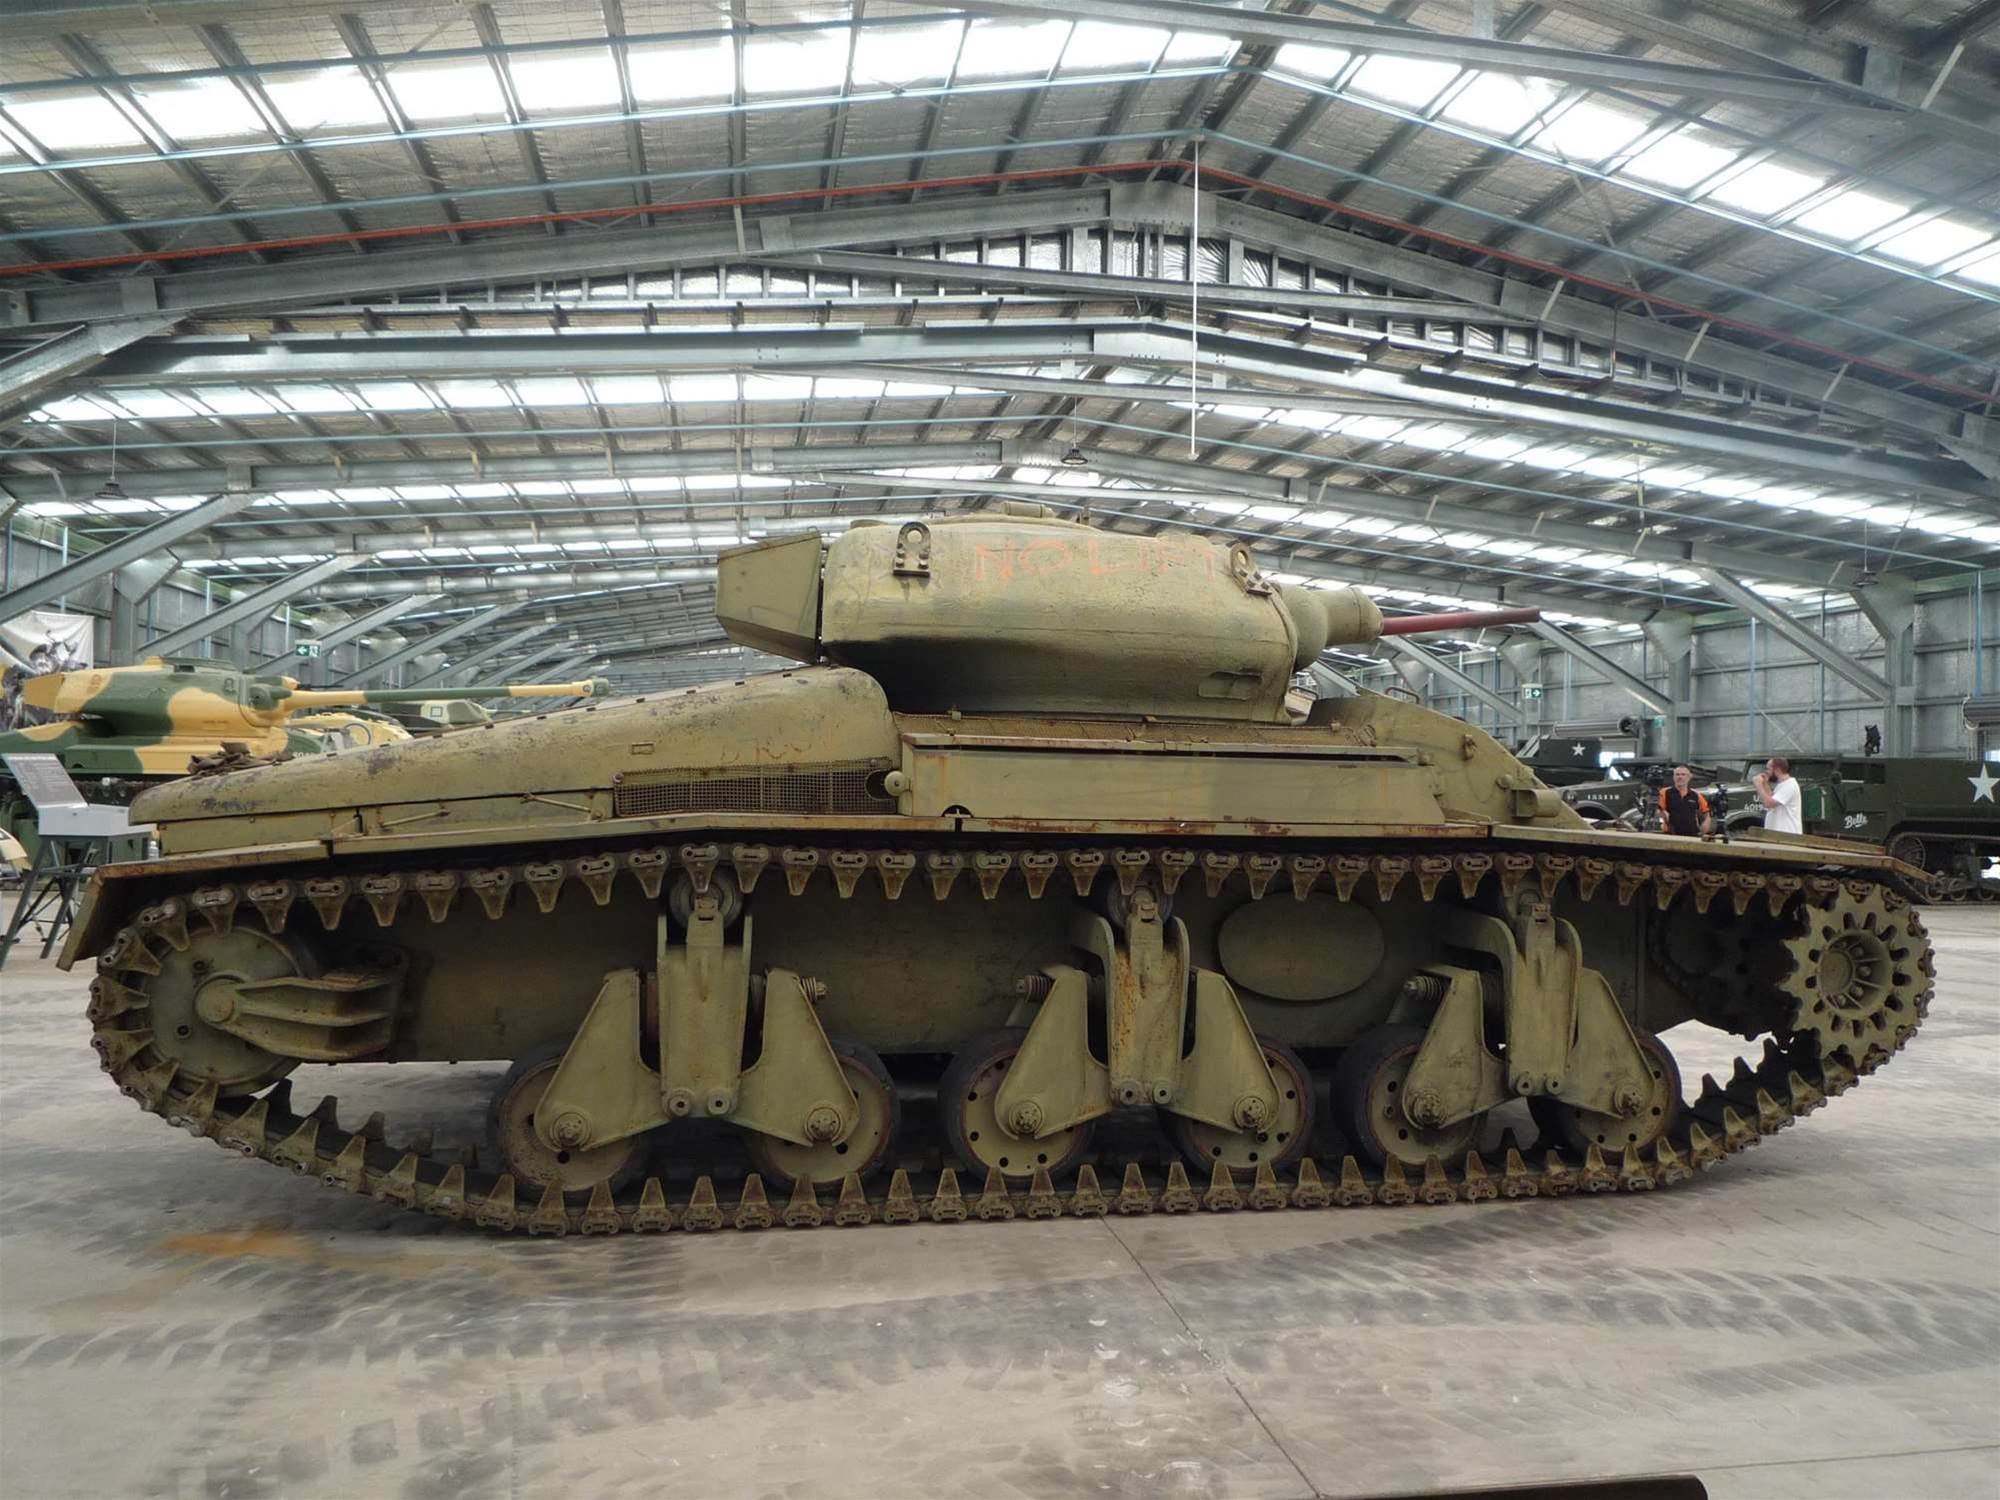 World of Tanks developer brings a classic Australian tank back home